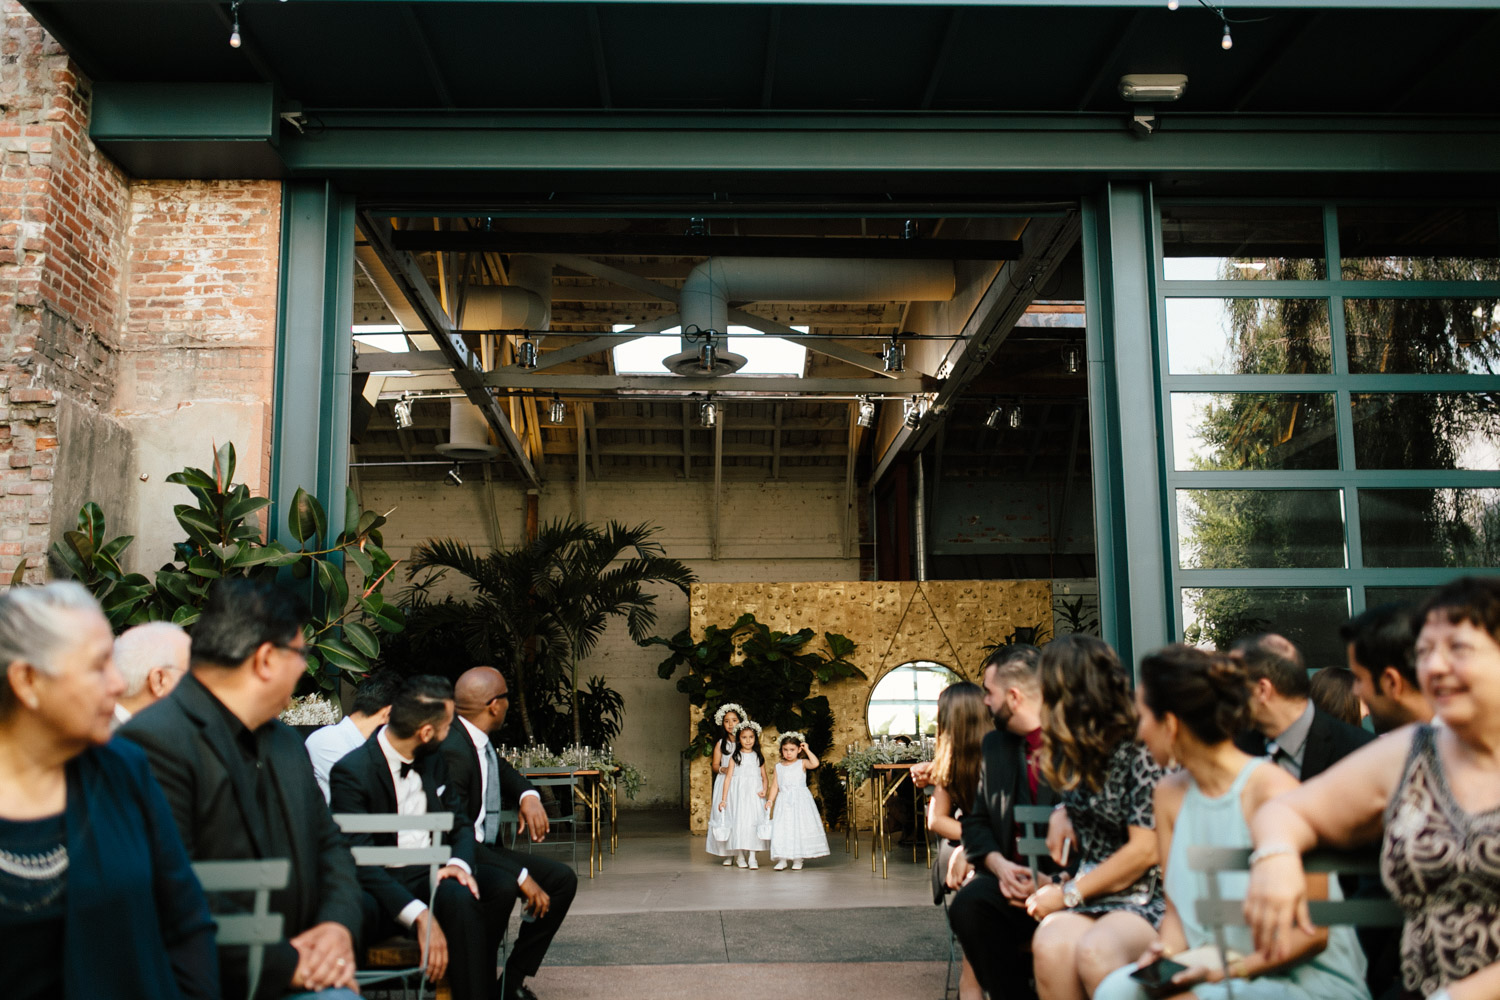 Los Angeles Wedding Photographer, Ace Hotel, Millwick Wedding - The Gathering Season x weareleoandkat 056.JPG